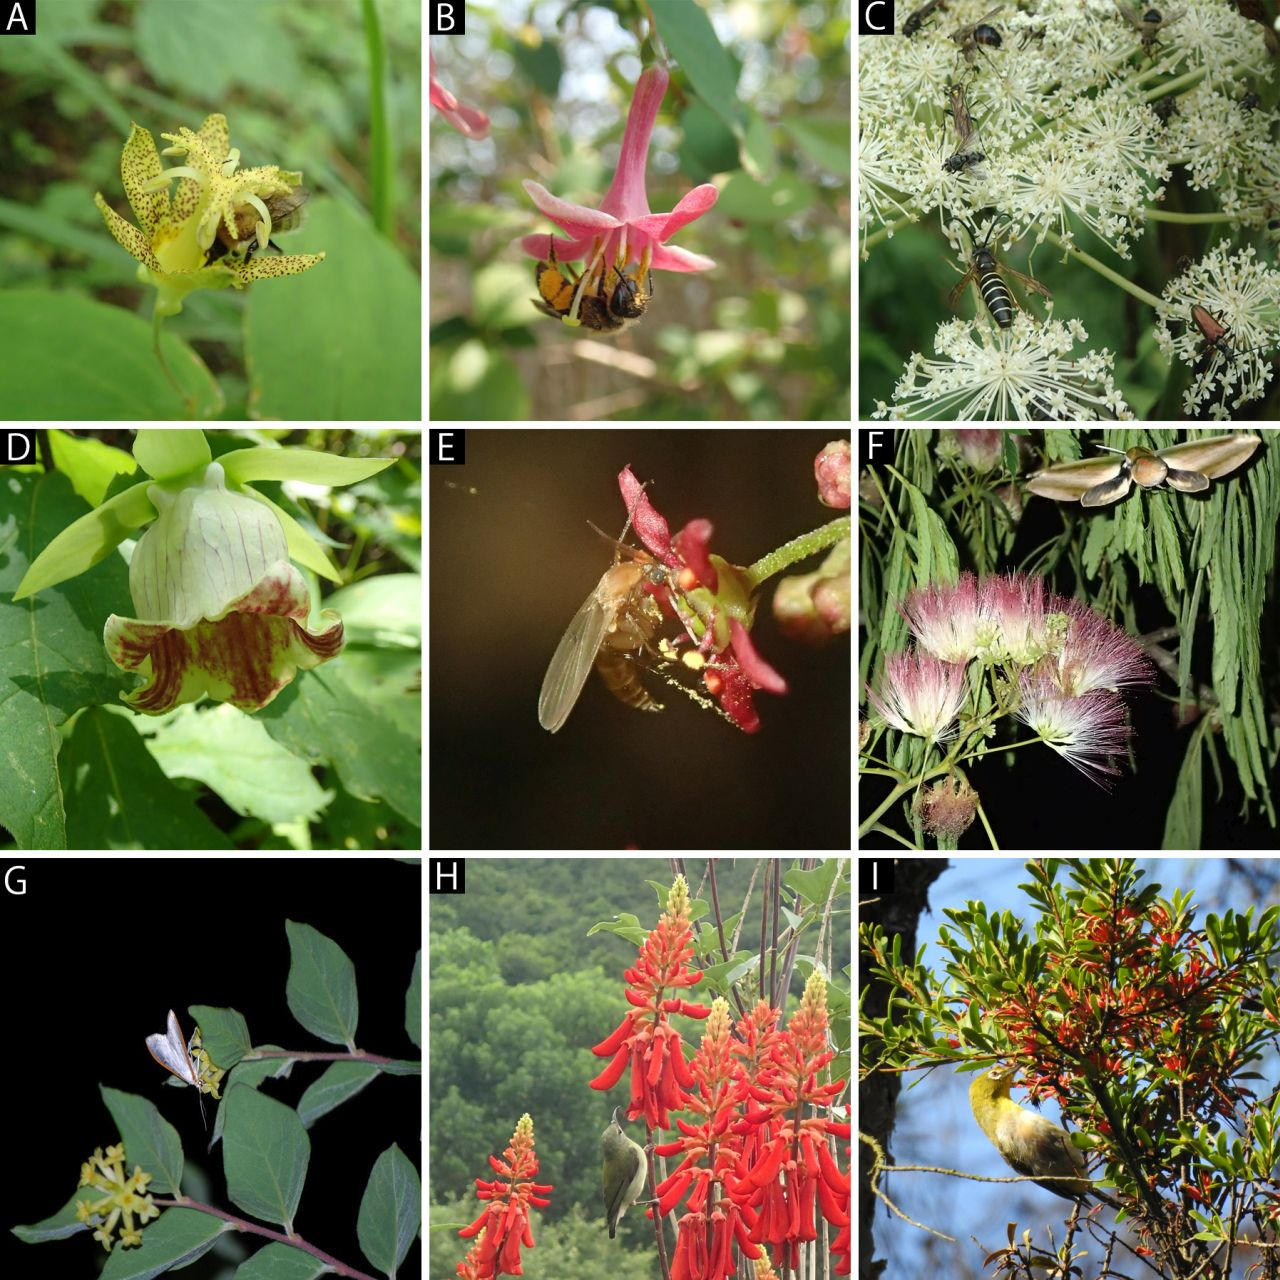 Representatives of flowers and pollinators in East Asia.